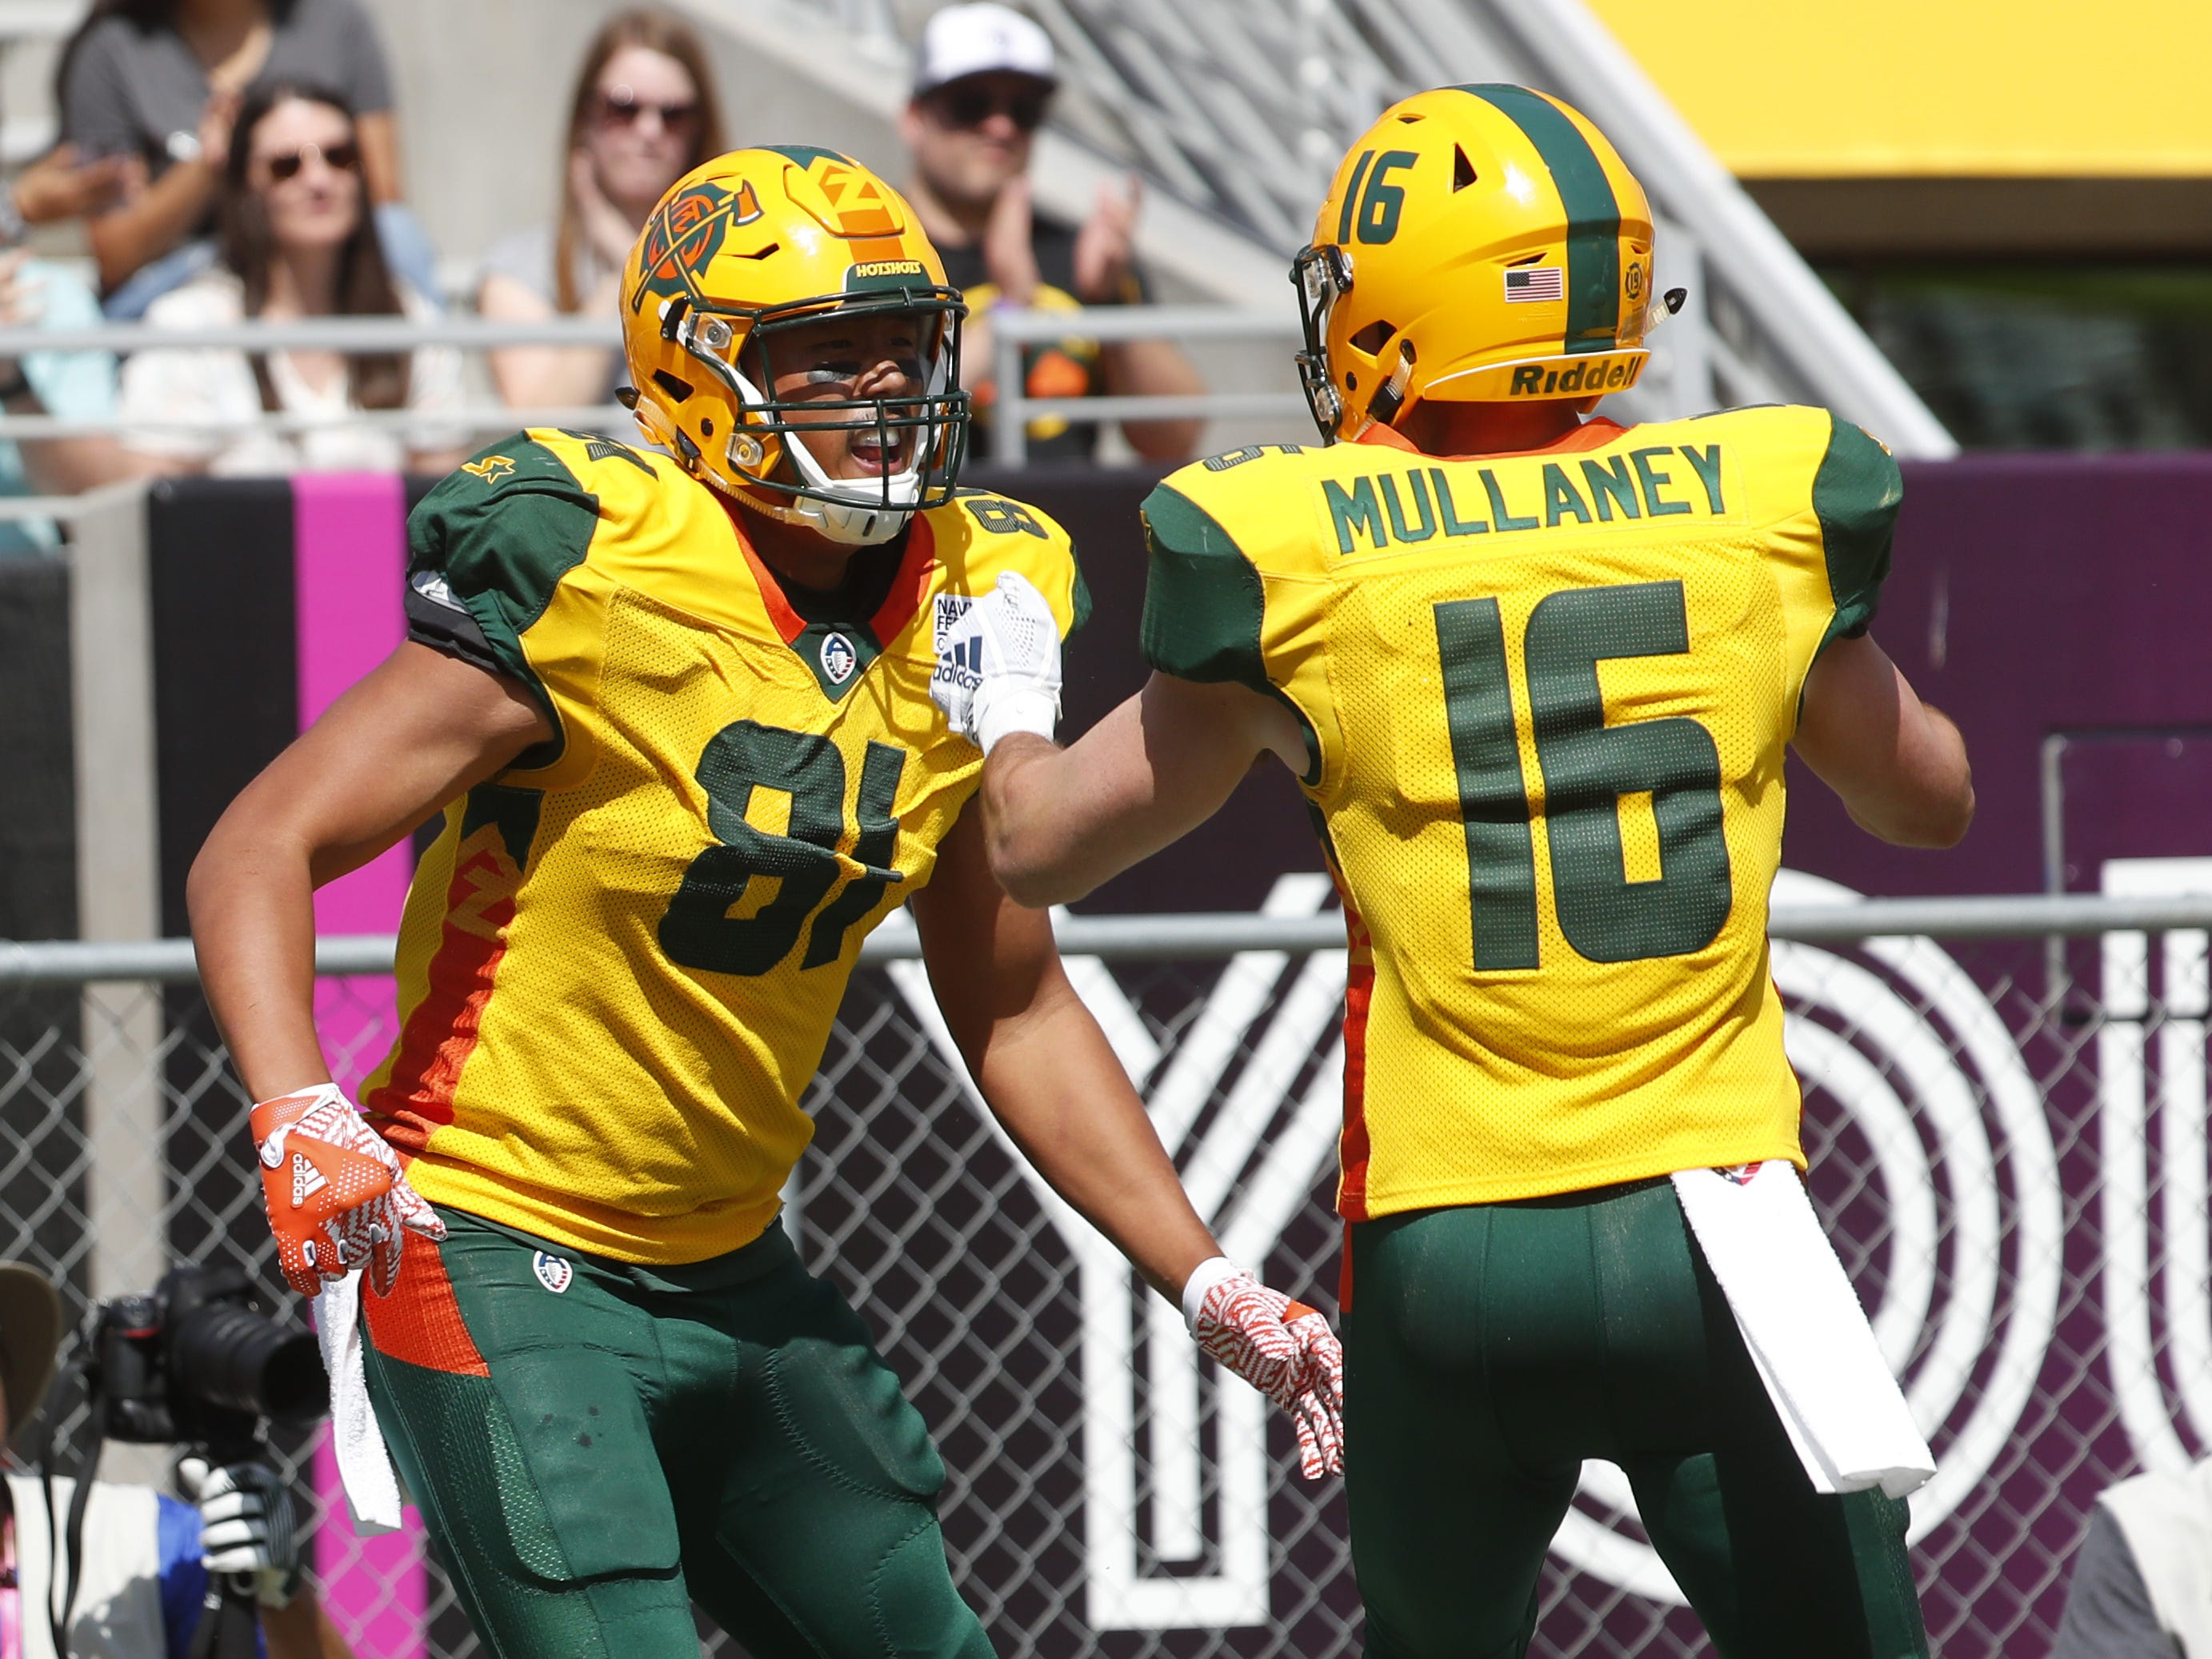 Hotshot's Thomas Duarte (81) celebrates a touchdown with teammate Richard Mullaney (16) during the first half against the Fleet at Sun Devil Stadium in Tempe, Ariz. on March 24, 2019.